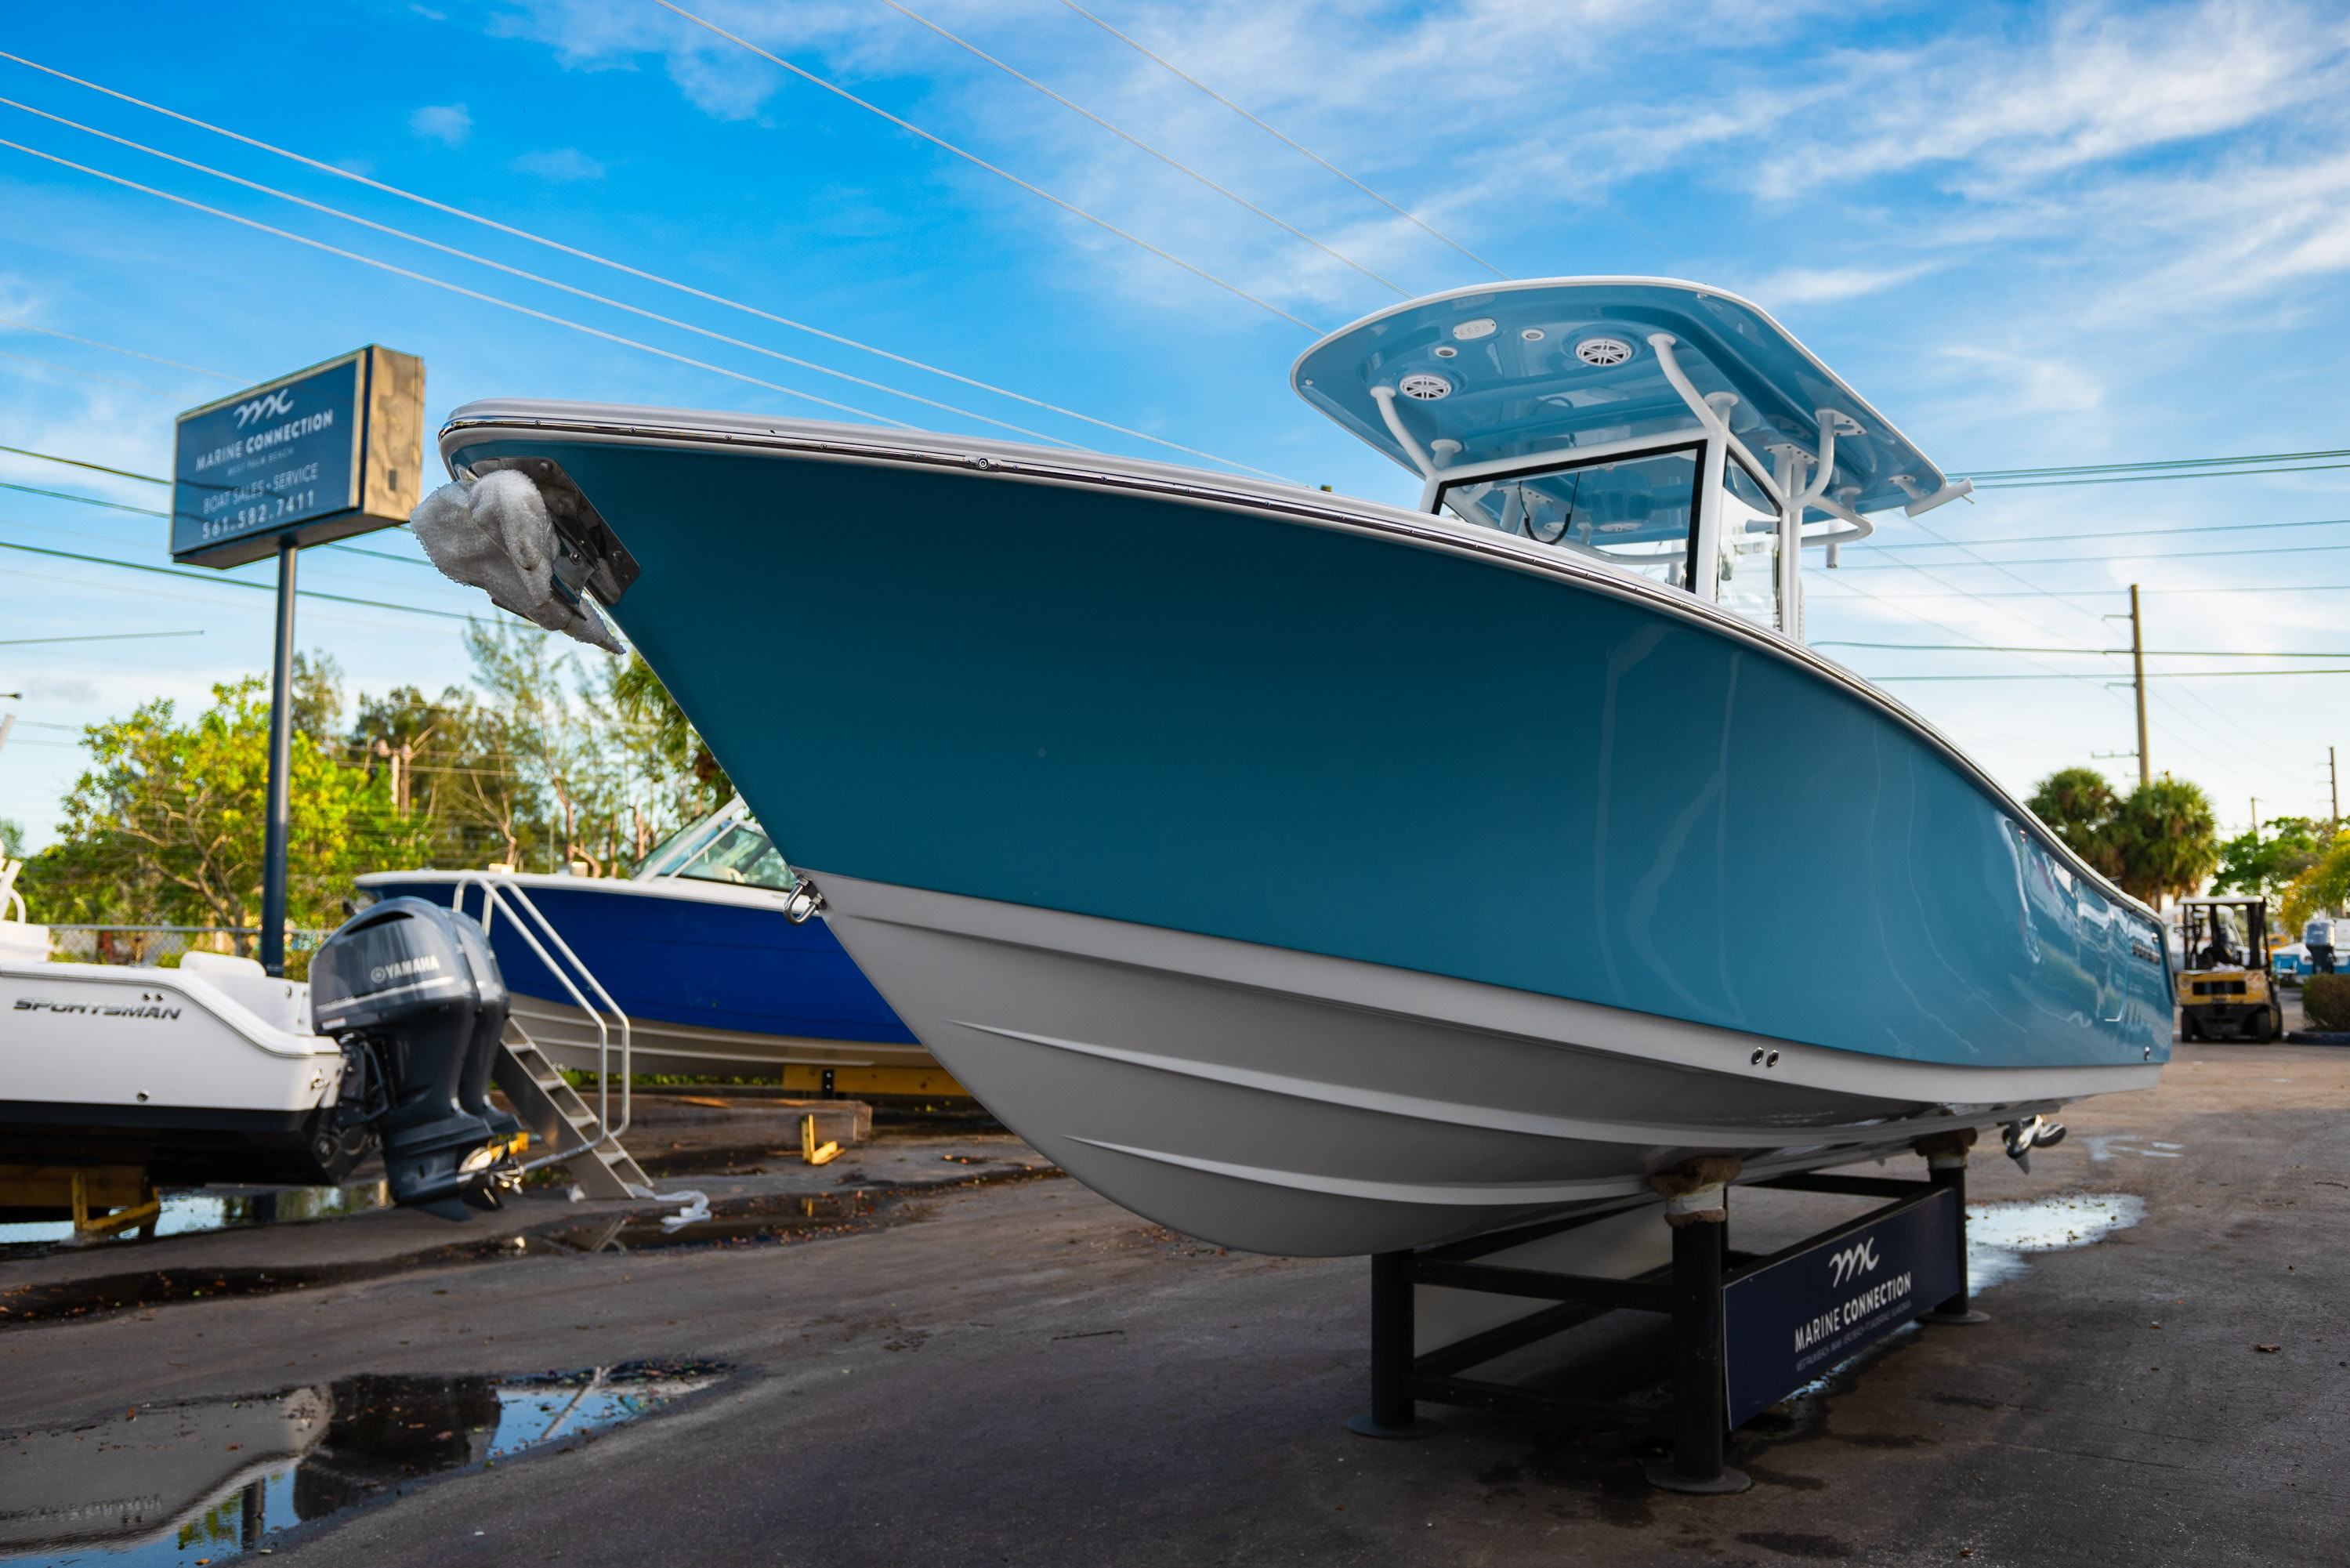 Thumbnail 3 for New 2020 Sportsman Open 282 Center Console boat for sale in West Palm Beach, FL